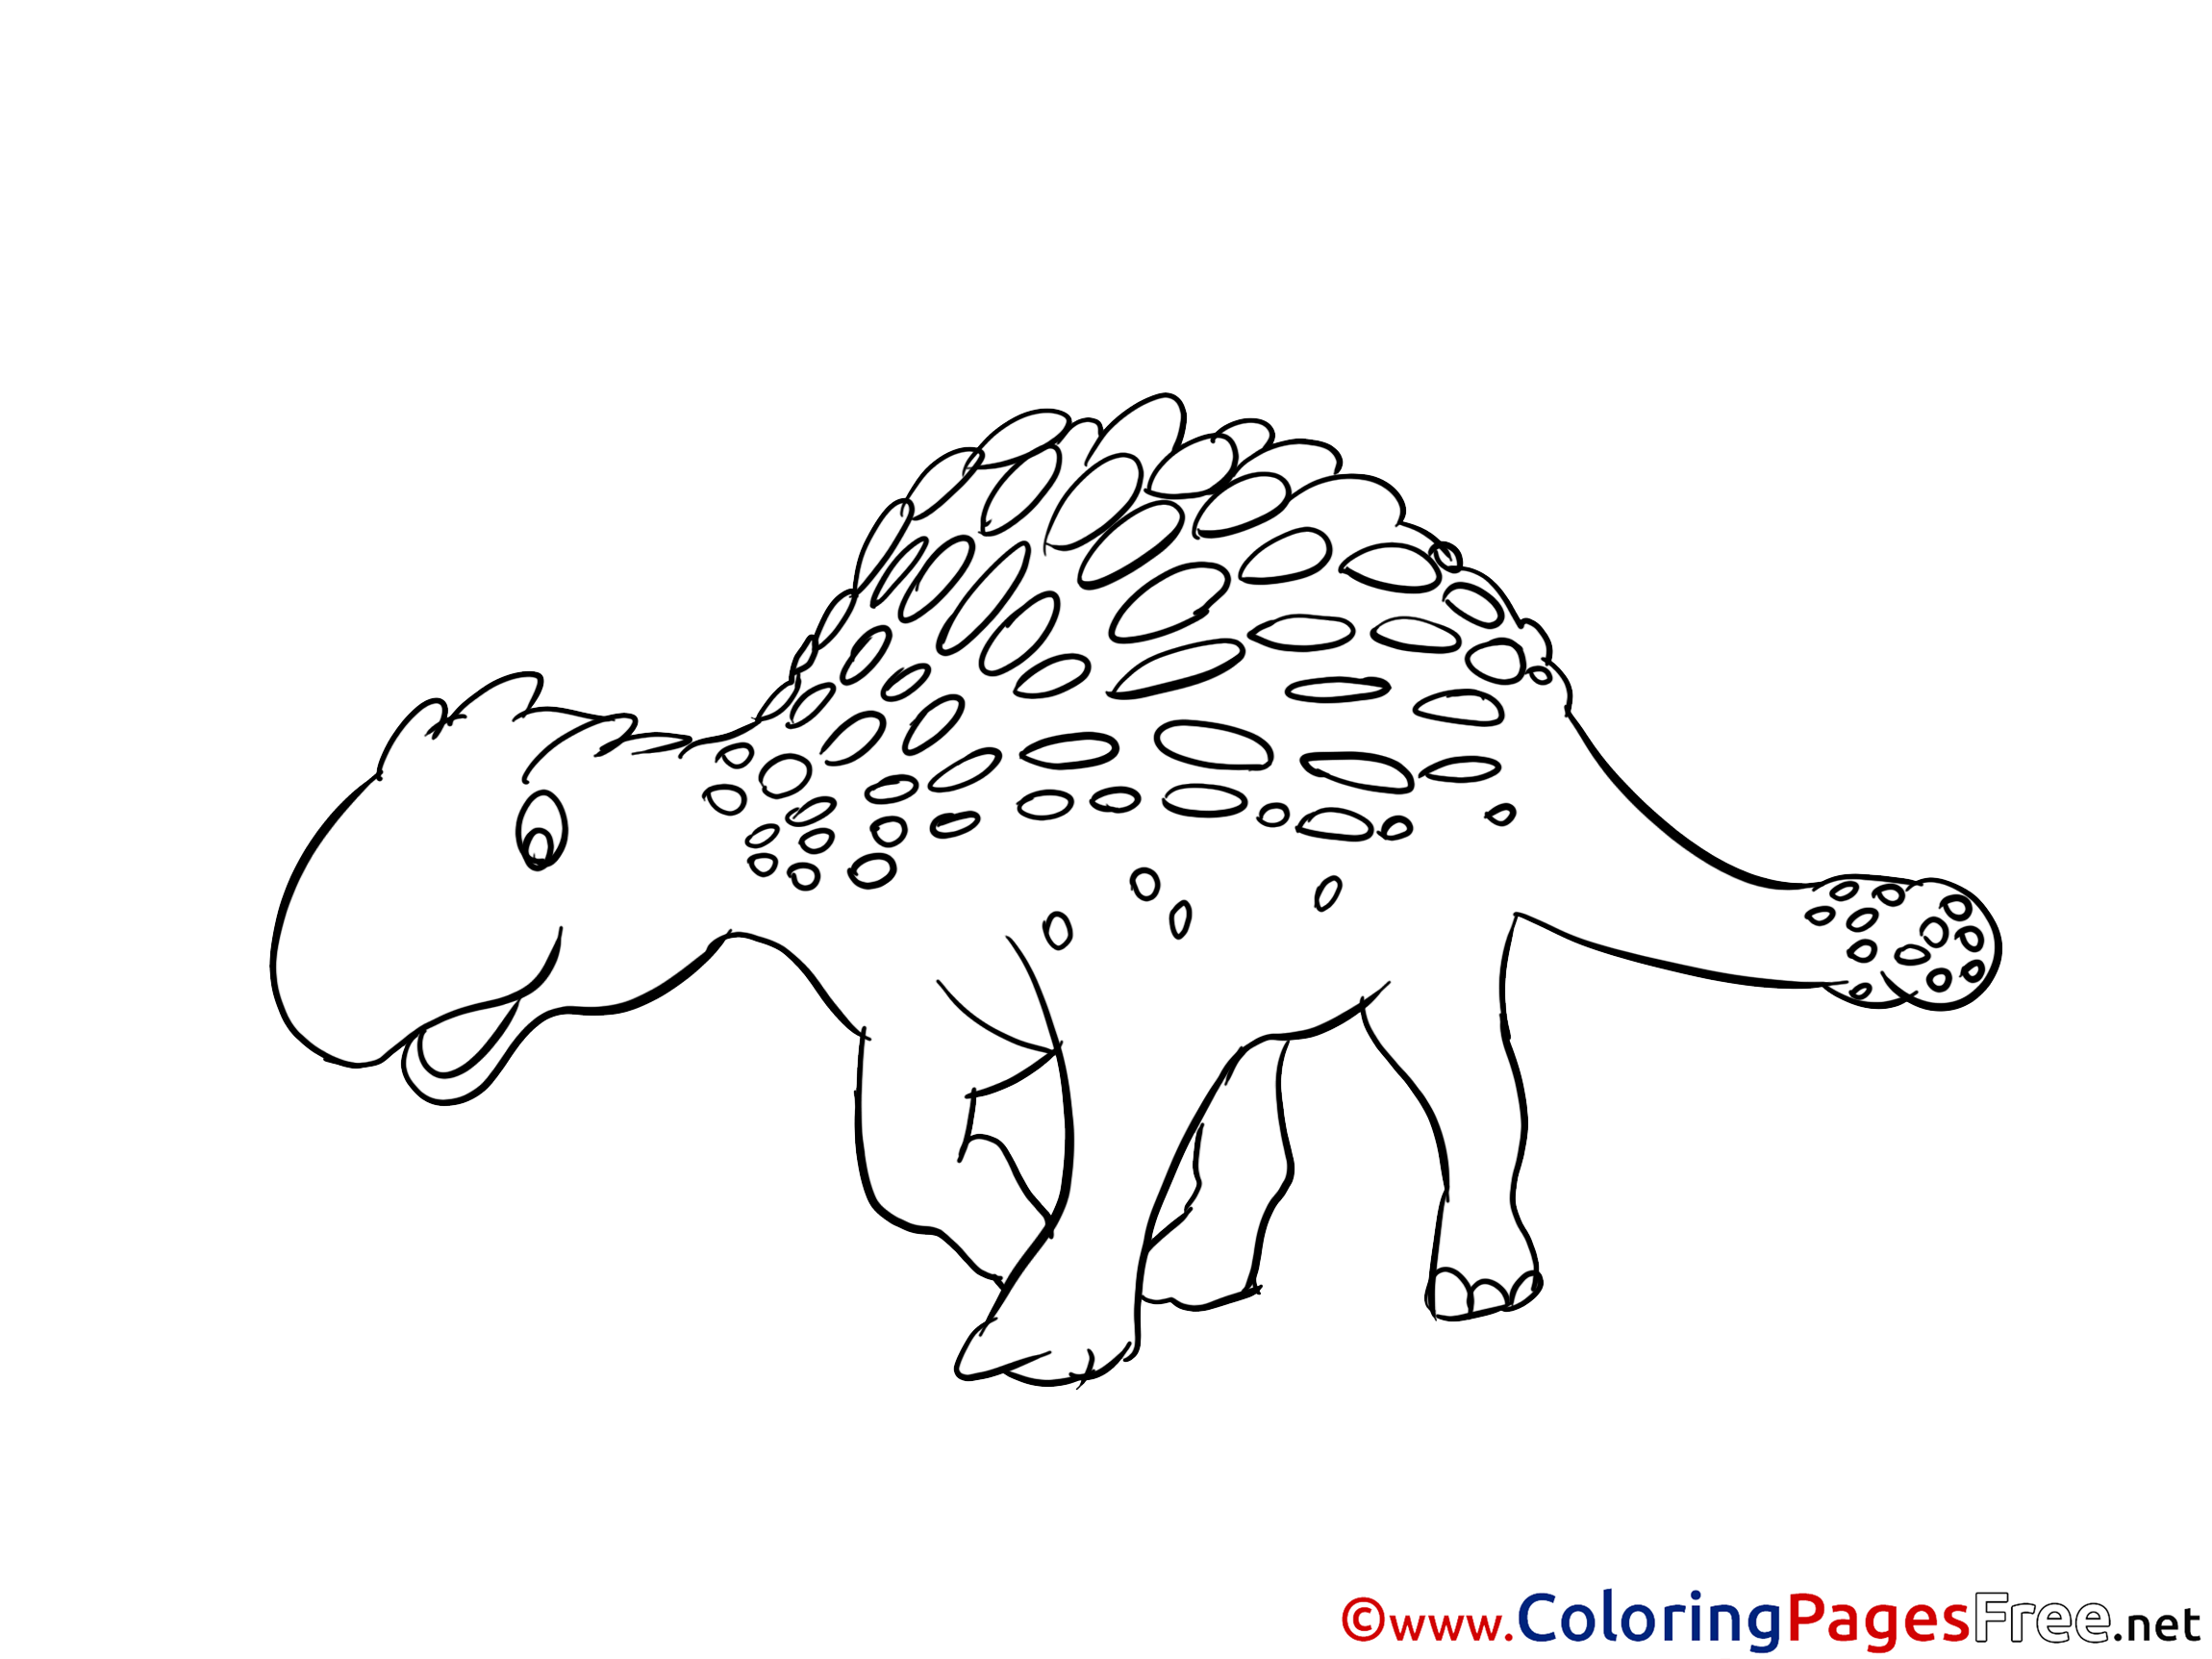 Ankylosaurus for Children free Coloring Pages